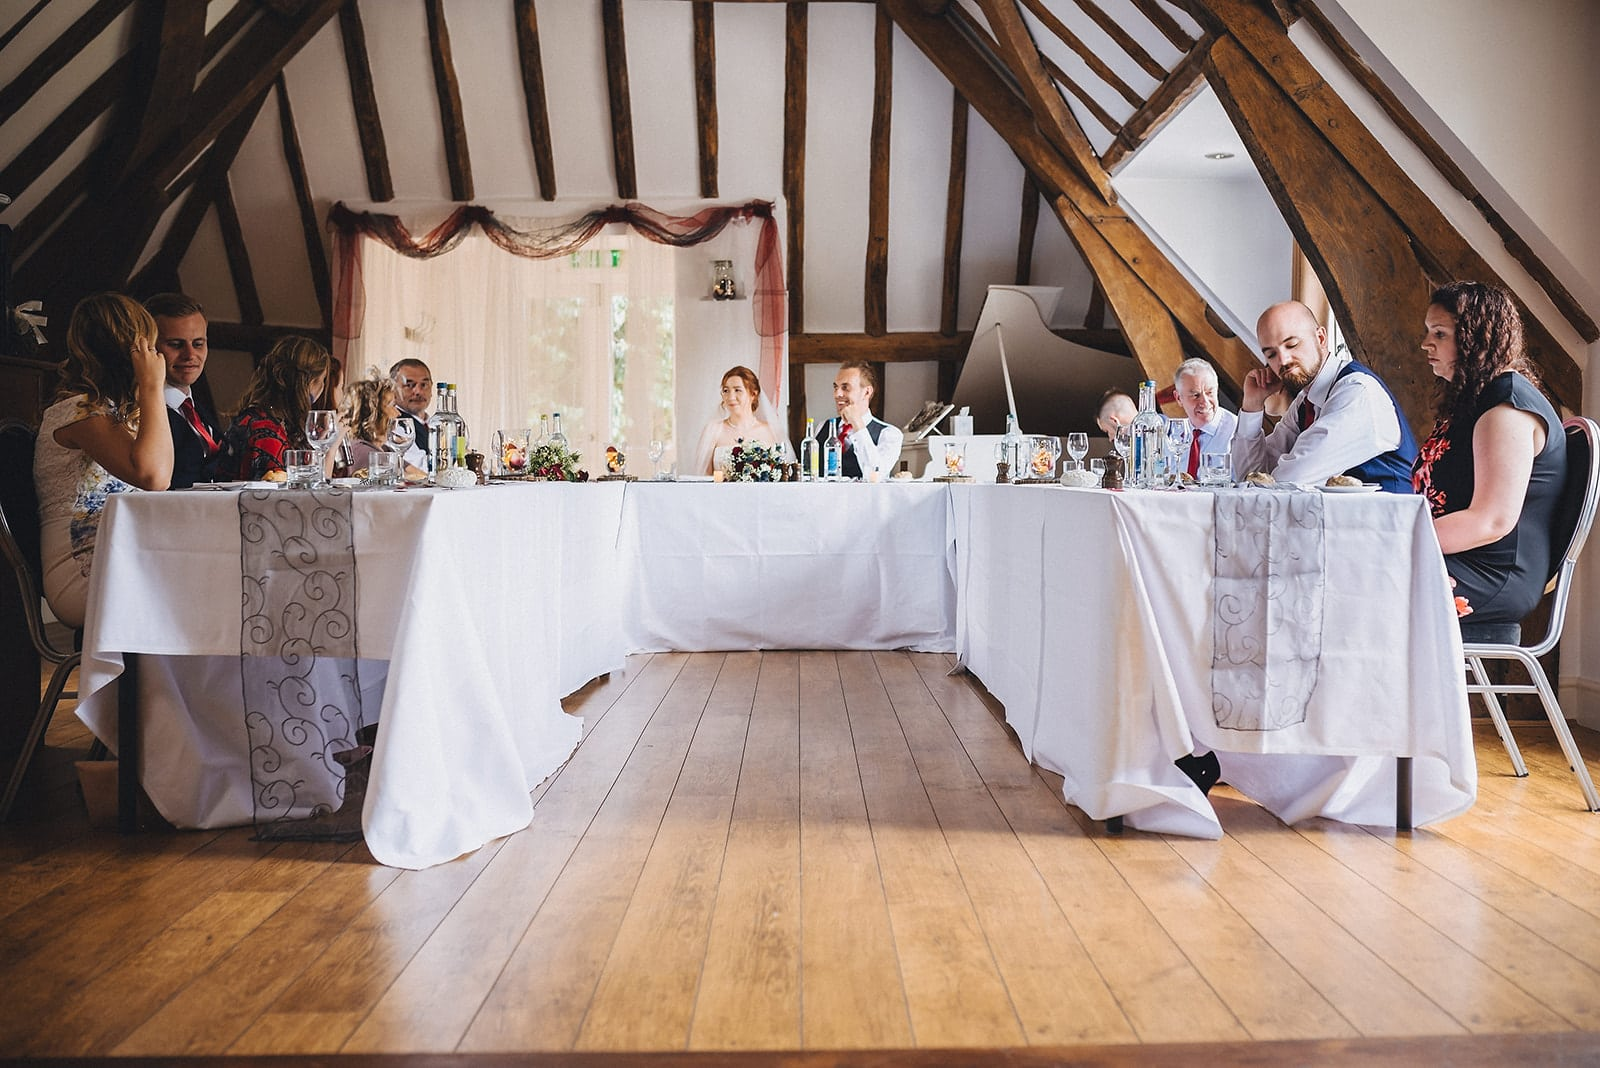 A Micro Wedding at the Hever Hotel in Kent